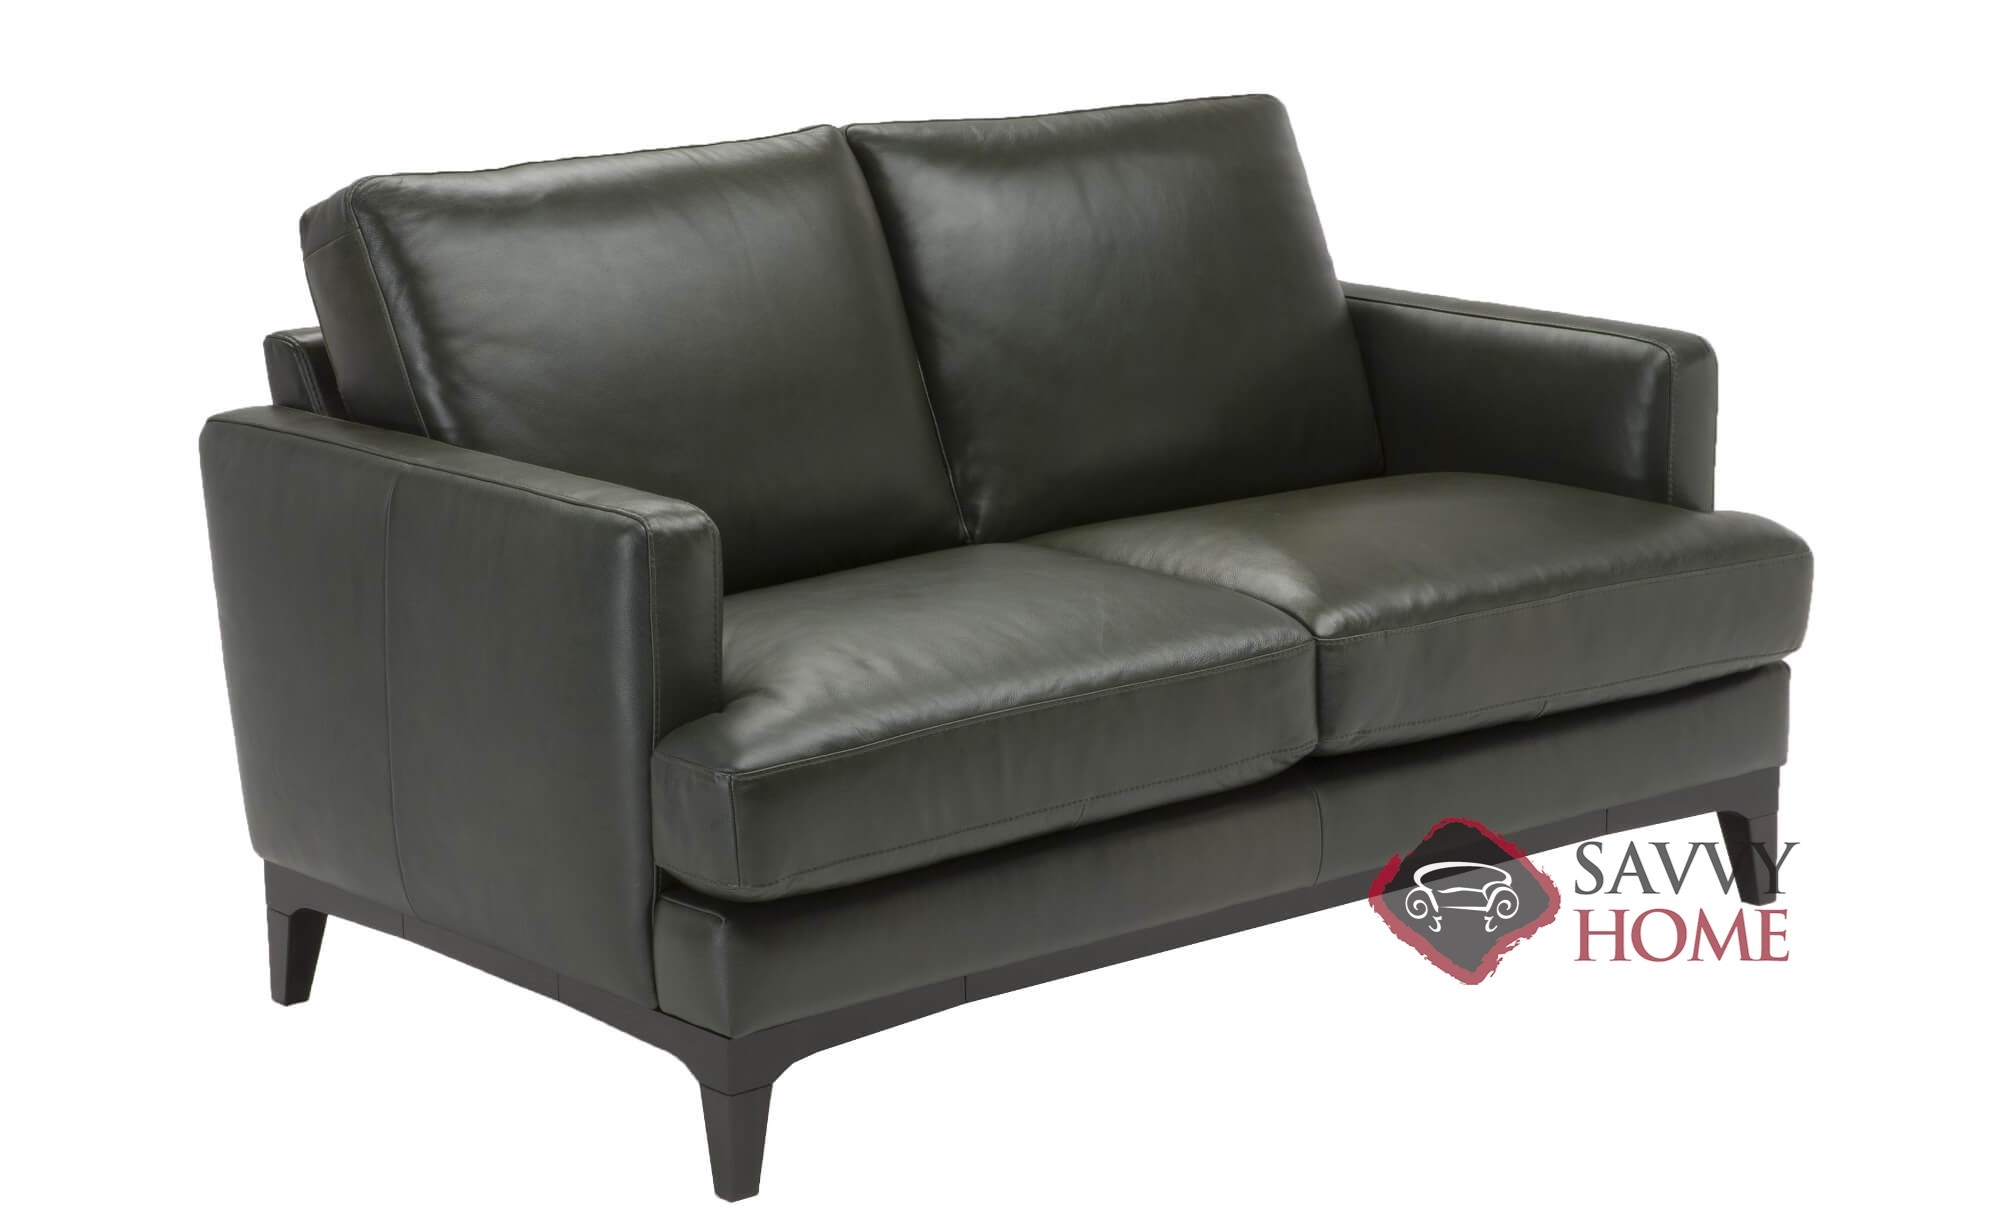 Phenomenal Bevera Leather Loveseat By Natuzzi Editions B970 005 Gmtry Best Dining Table And Chair Ideas Images Gmtryco